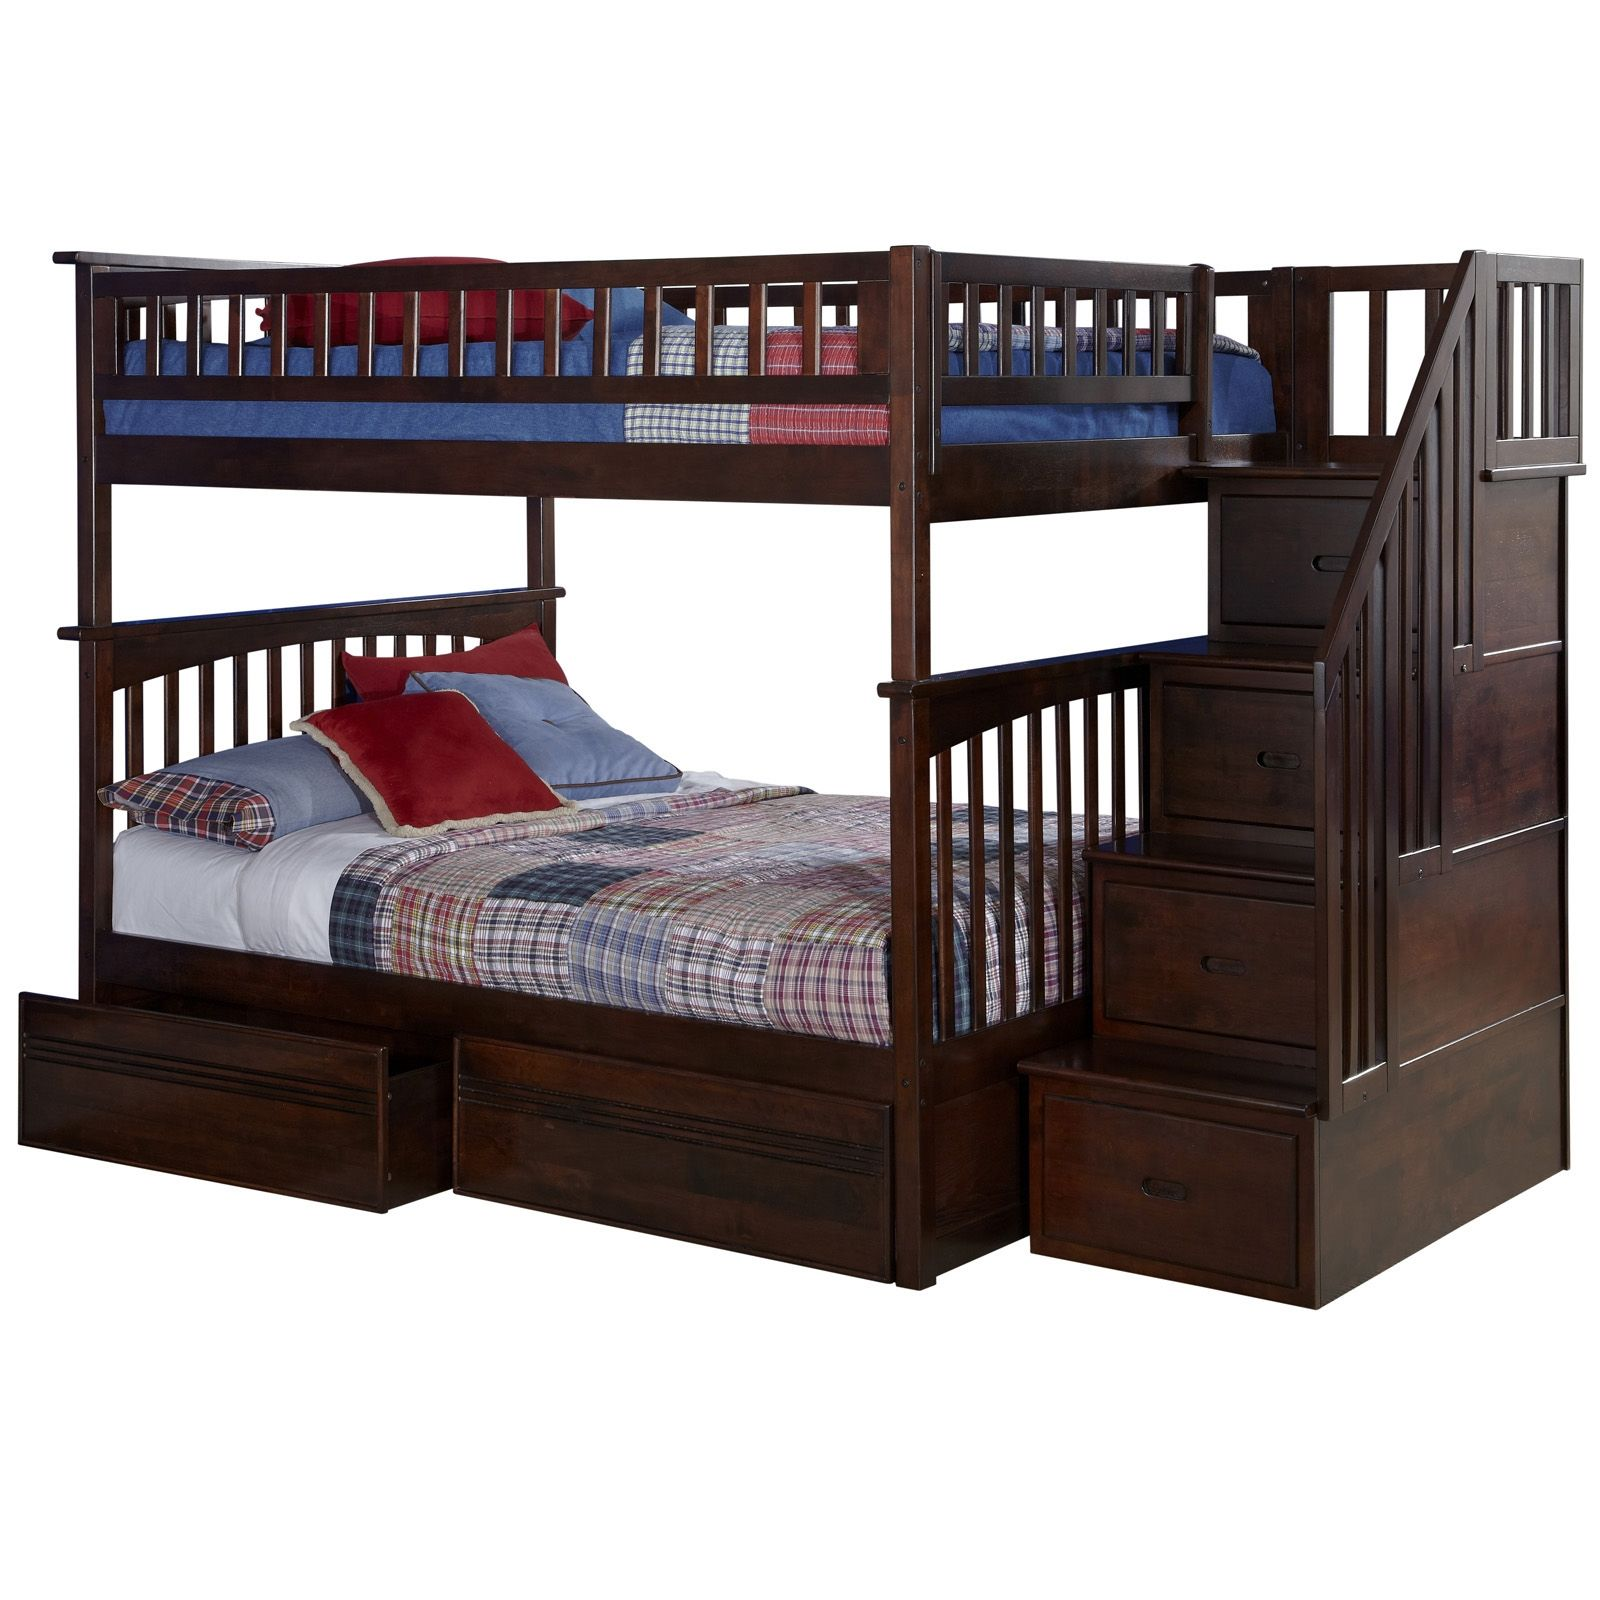 cambridge bed bernie and staircase beds bunk stairs drawers innovations phyl s with